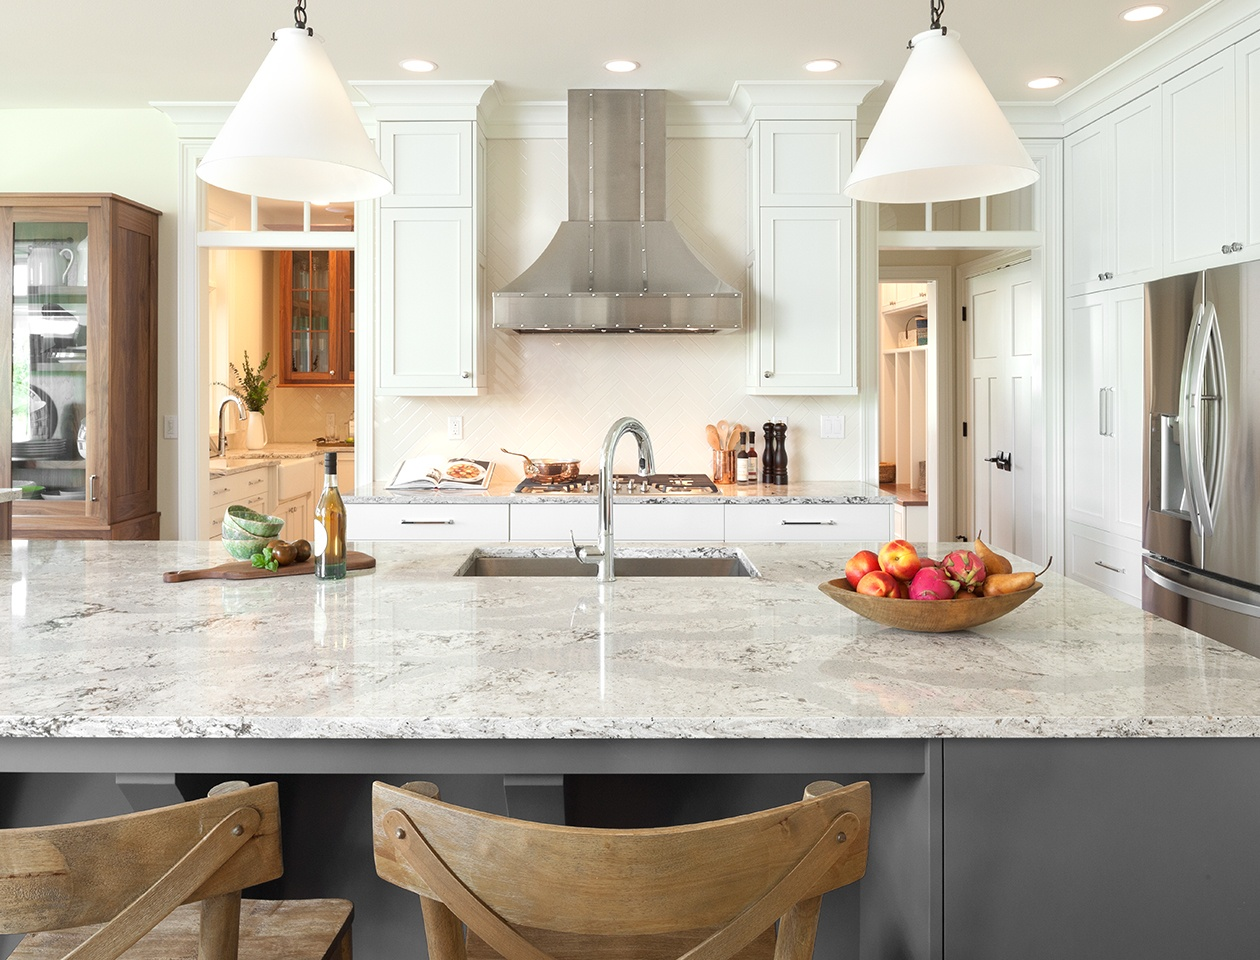 15 Stunning Quartz Countertop Colors To